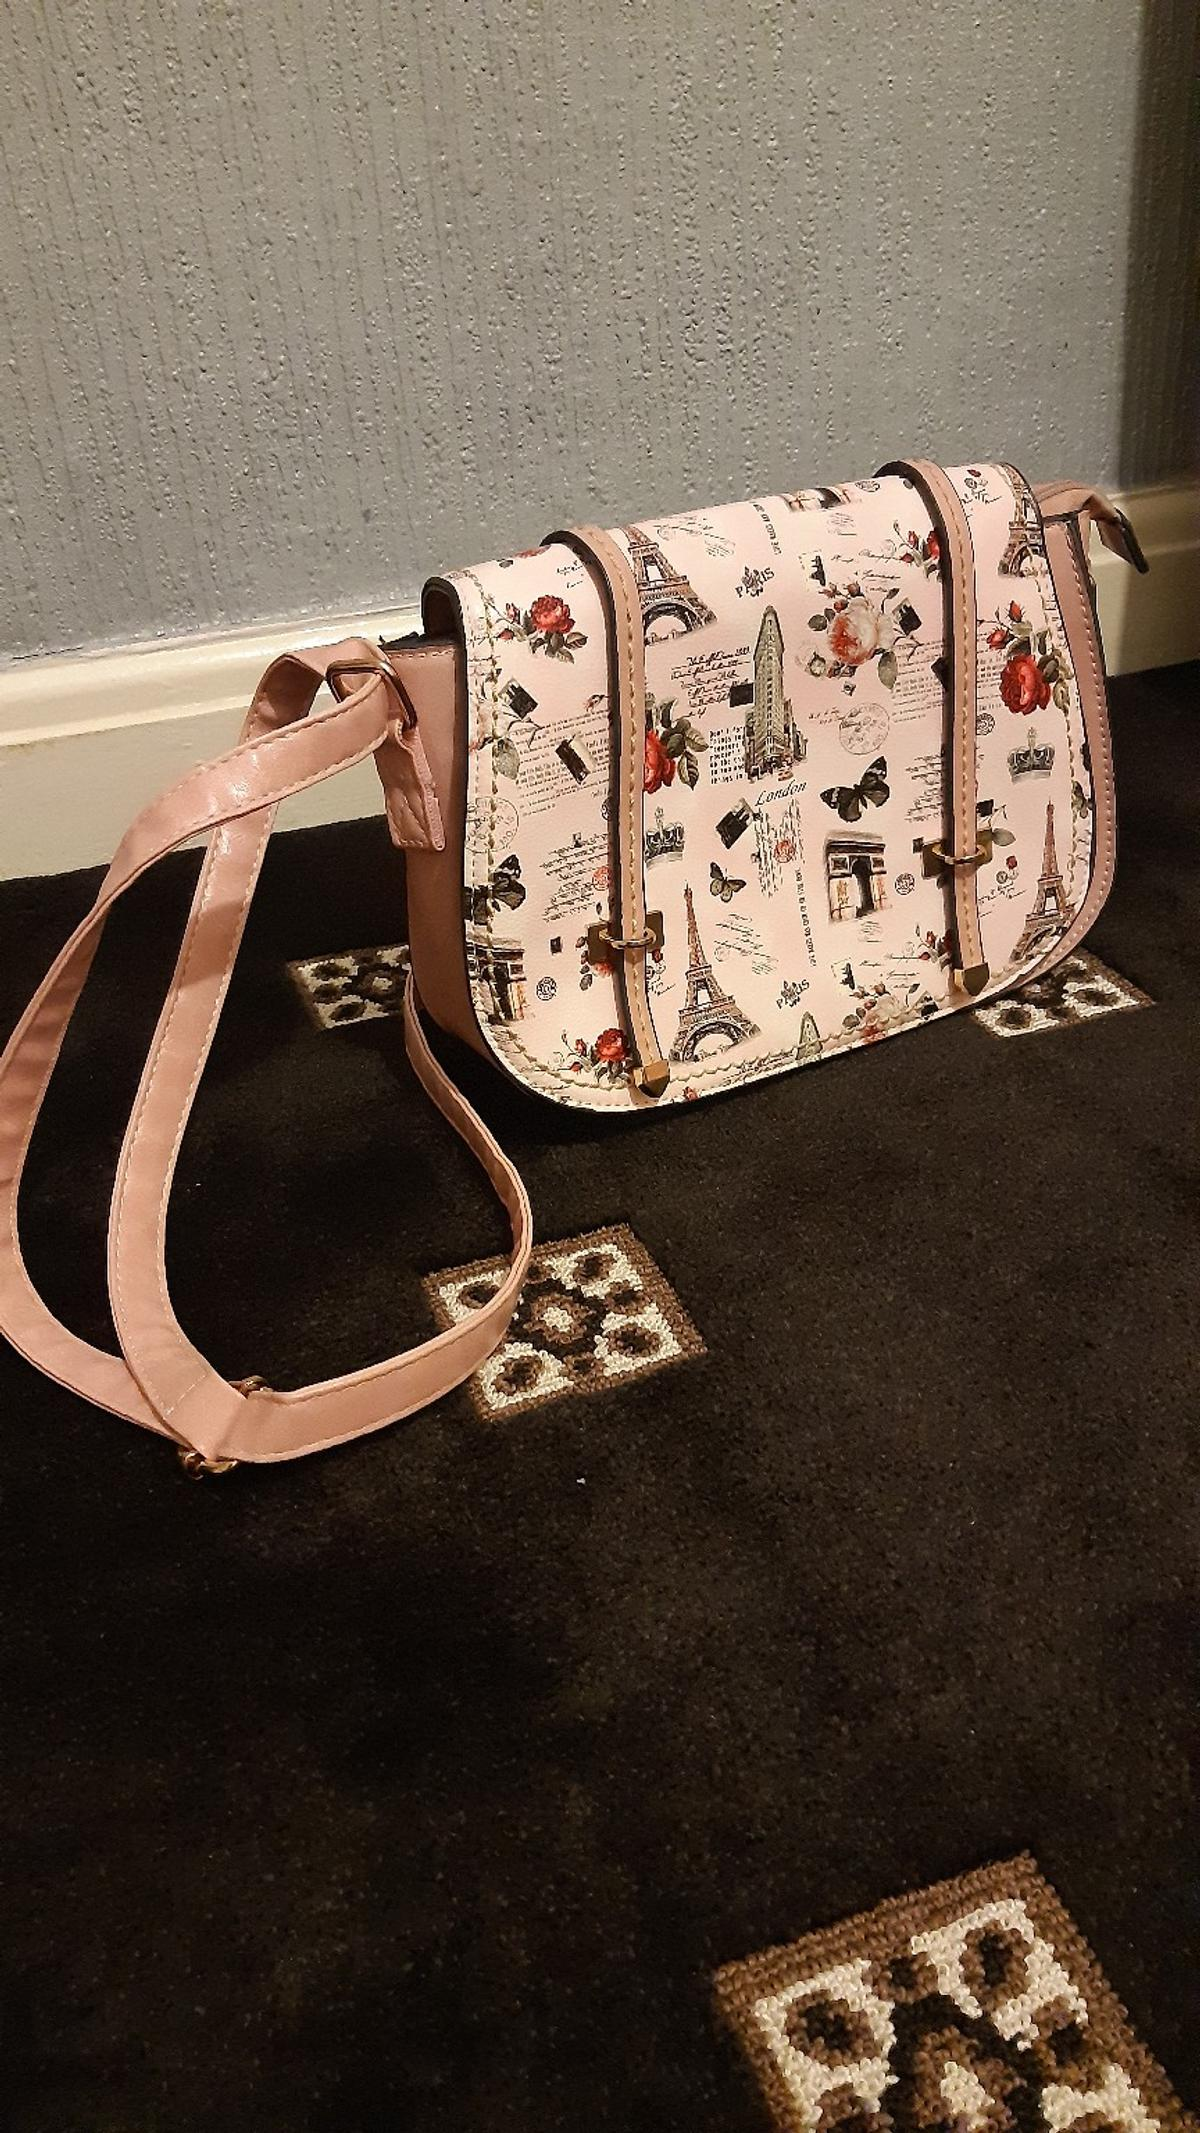 Stylo pink colour handbag like new with long strap make offrz plz